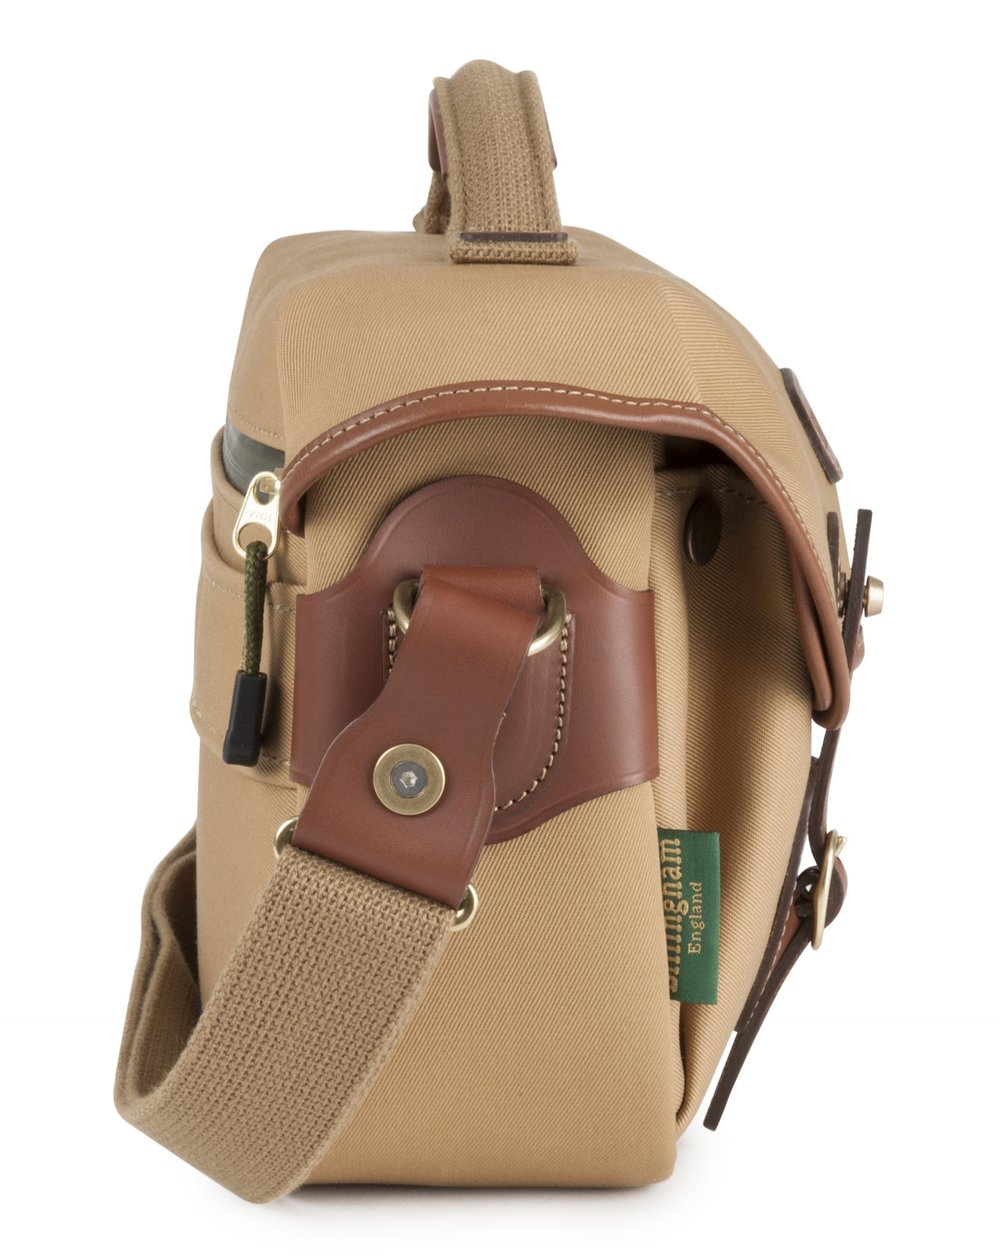 Billingham Hadley Small Pro SIDE - Khaki Canvas_Tan.jpg